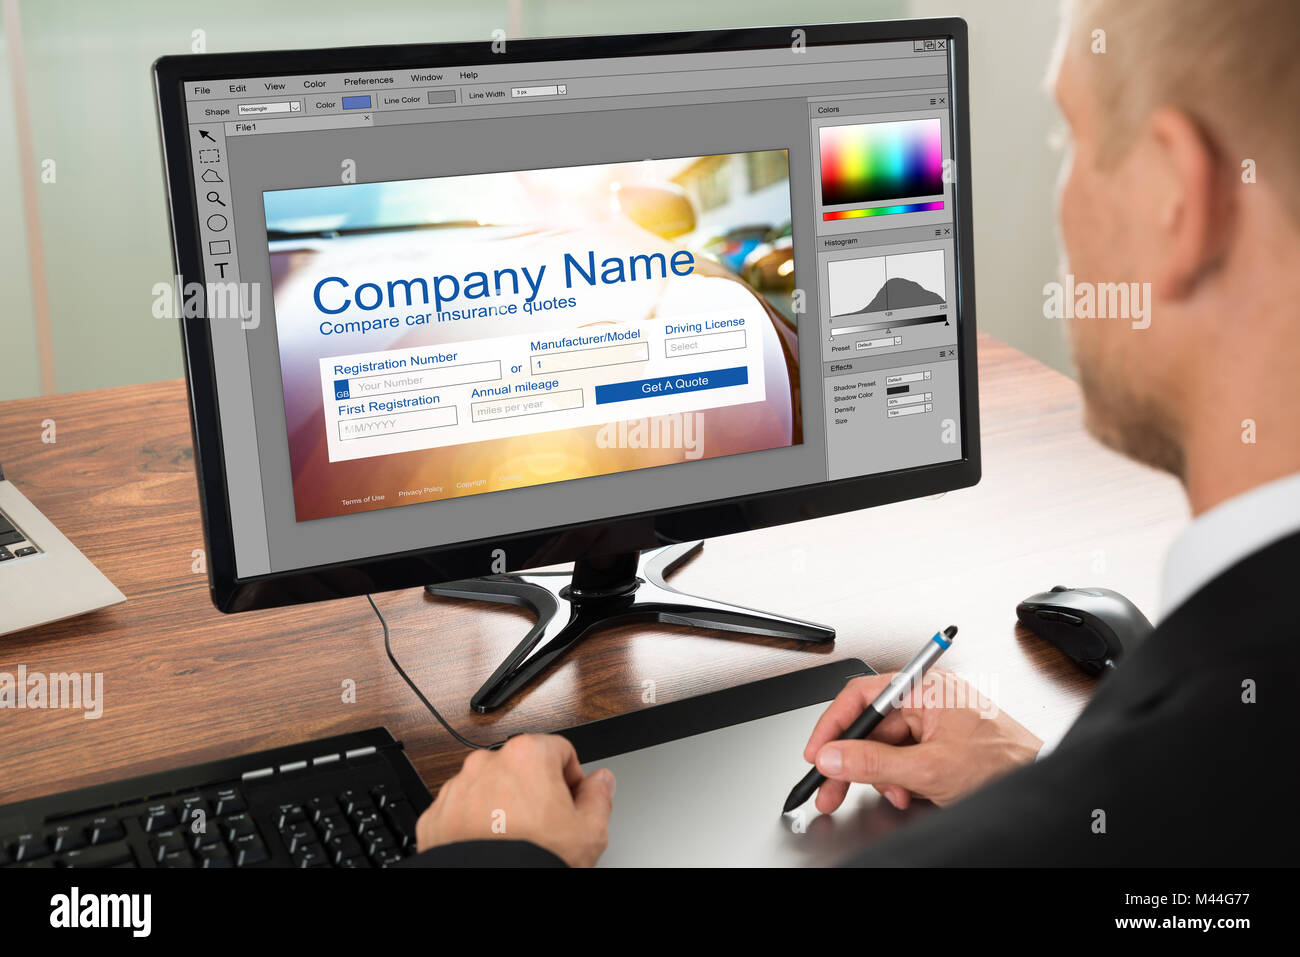 Designer Making Webpage Design On Computer Using Graphic Tablet - Stock Image